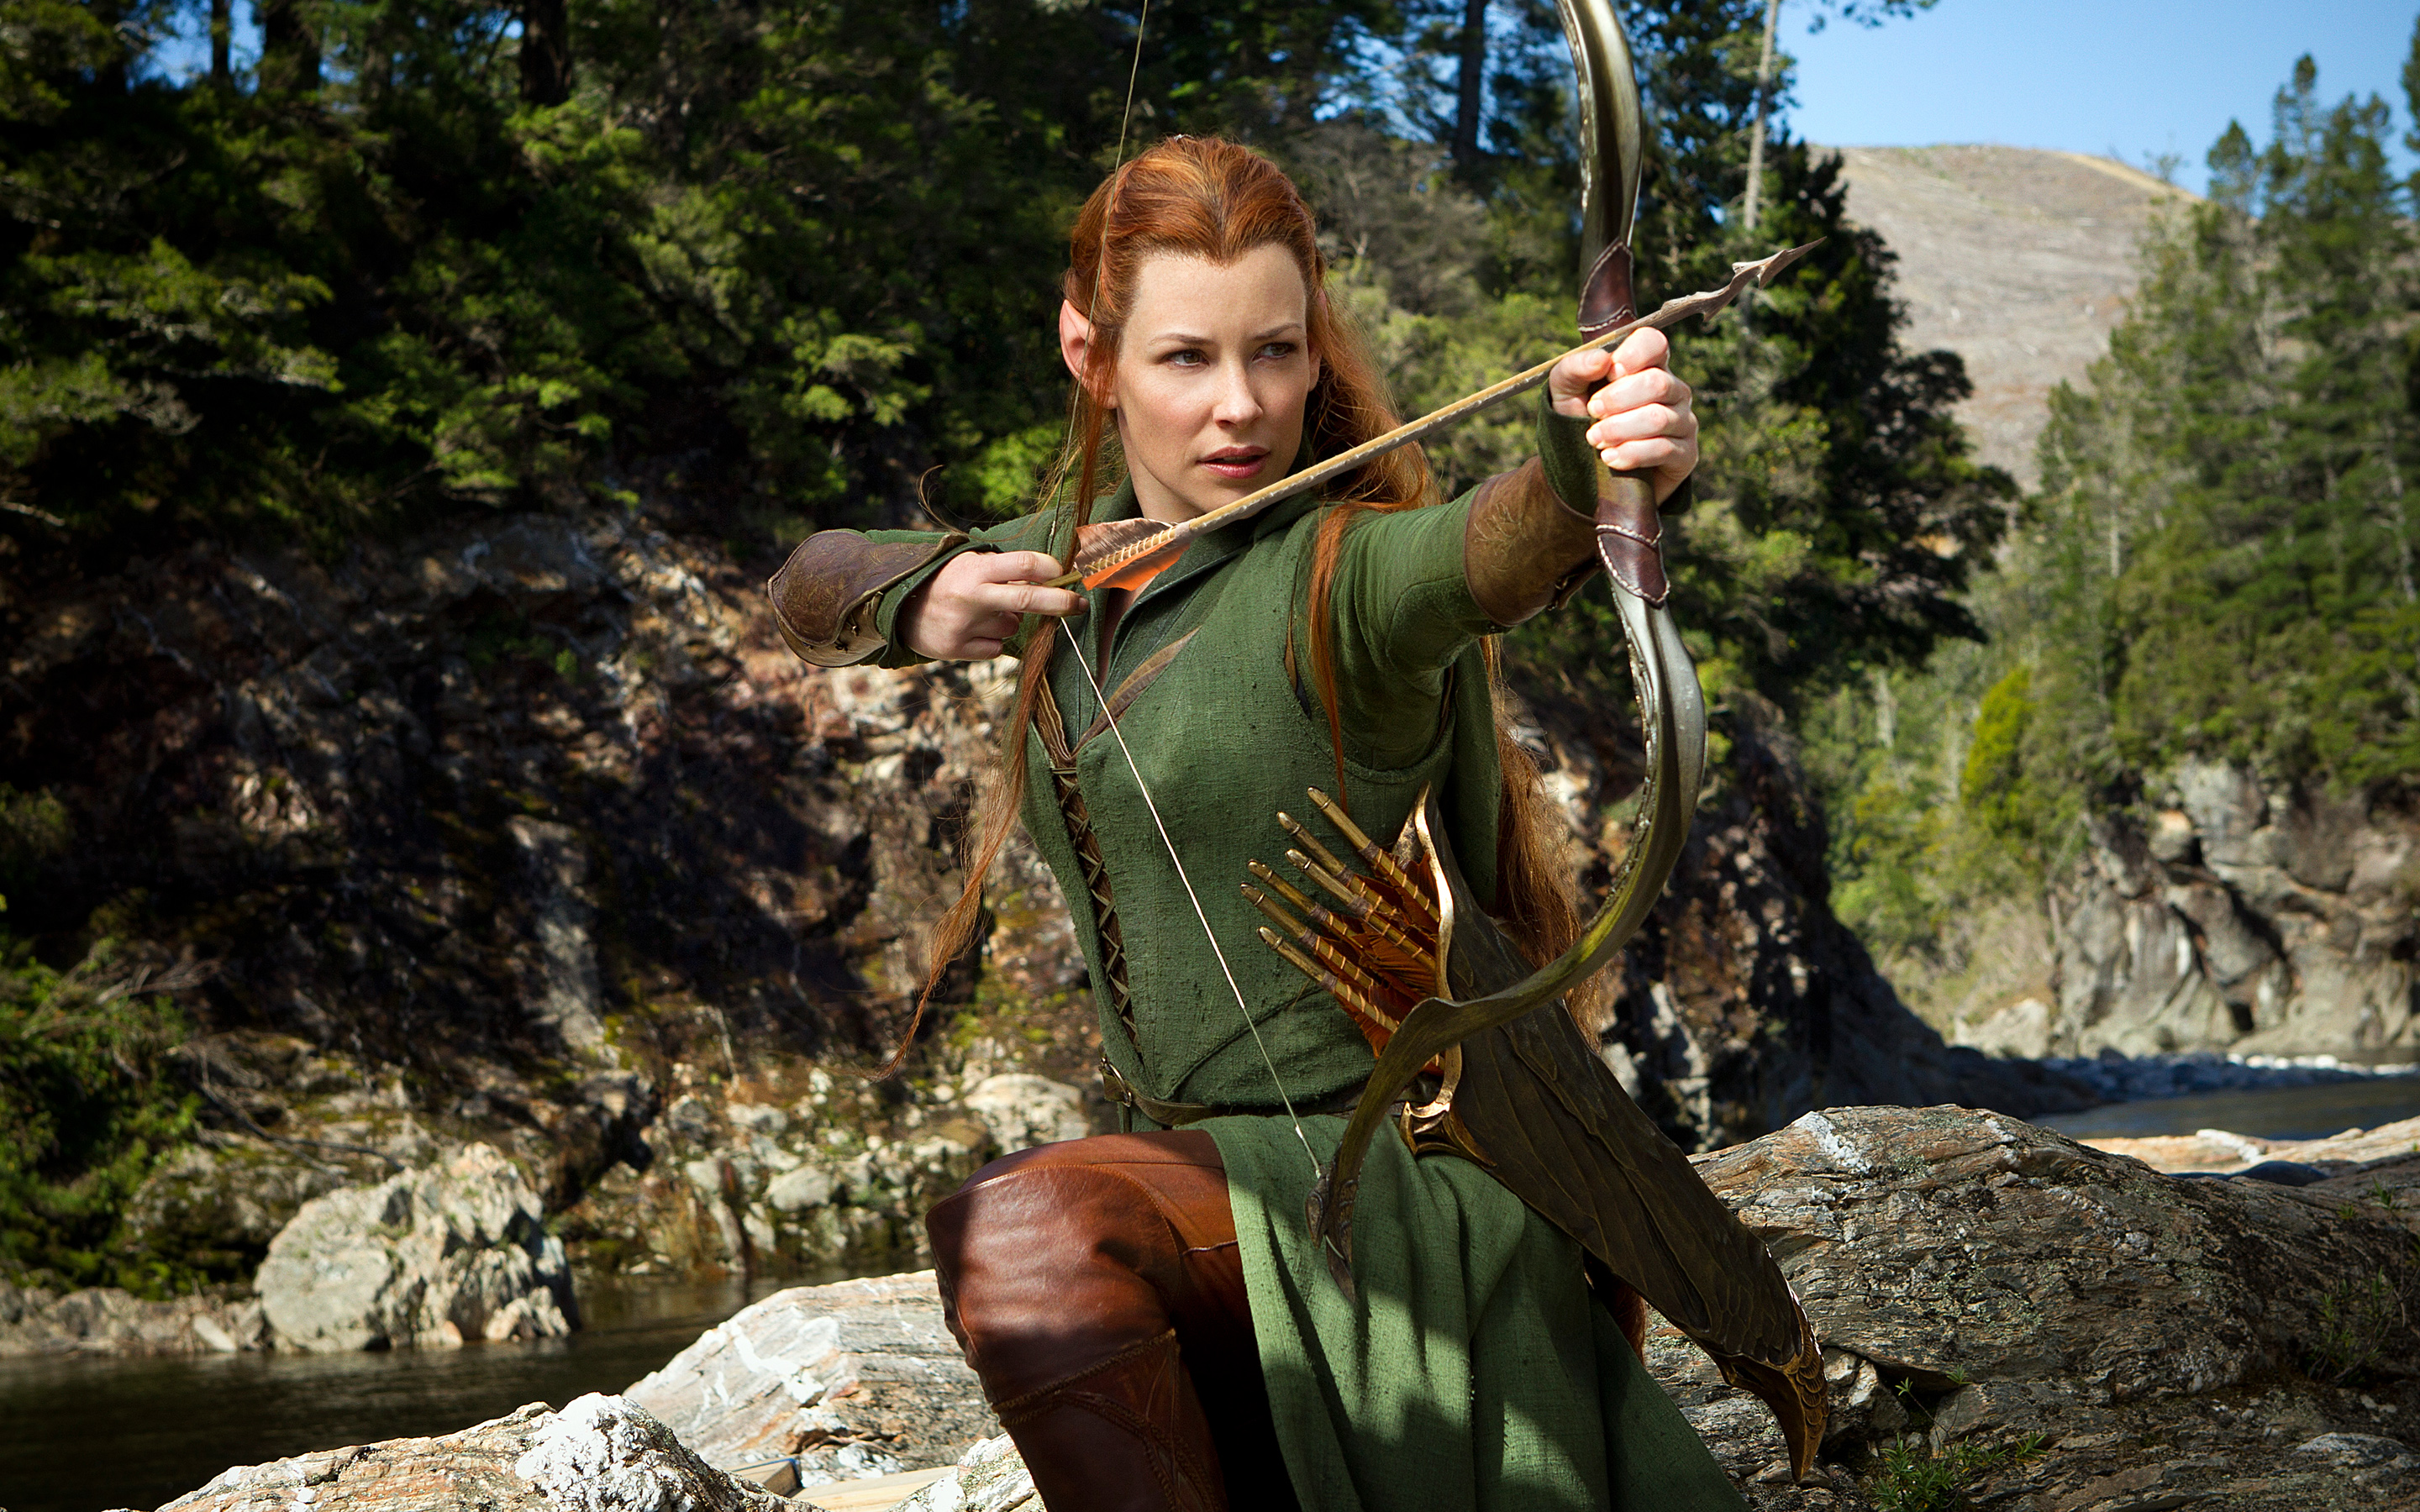 Evangeline Lilly as Tauriel in Hobbit